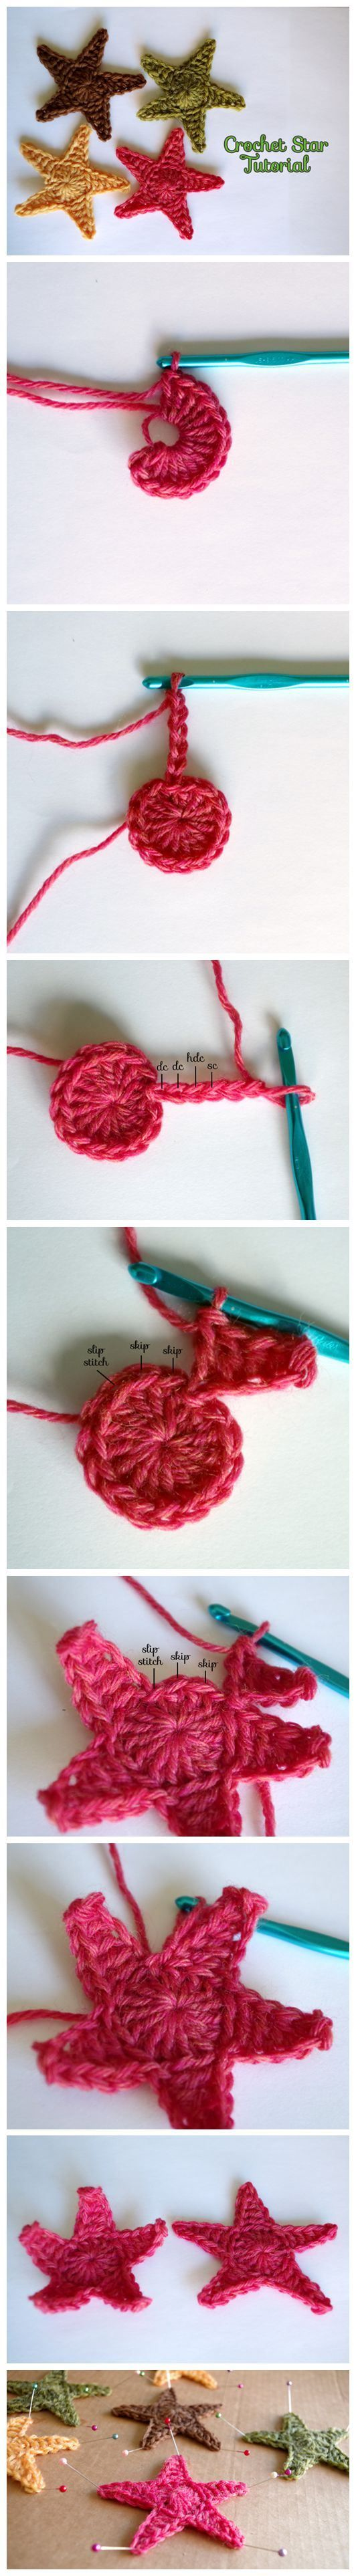 How to make a crochet star | Looks like a sea star